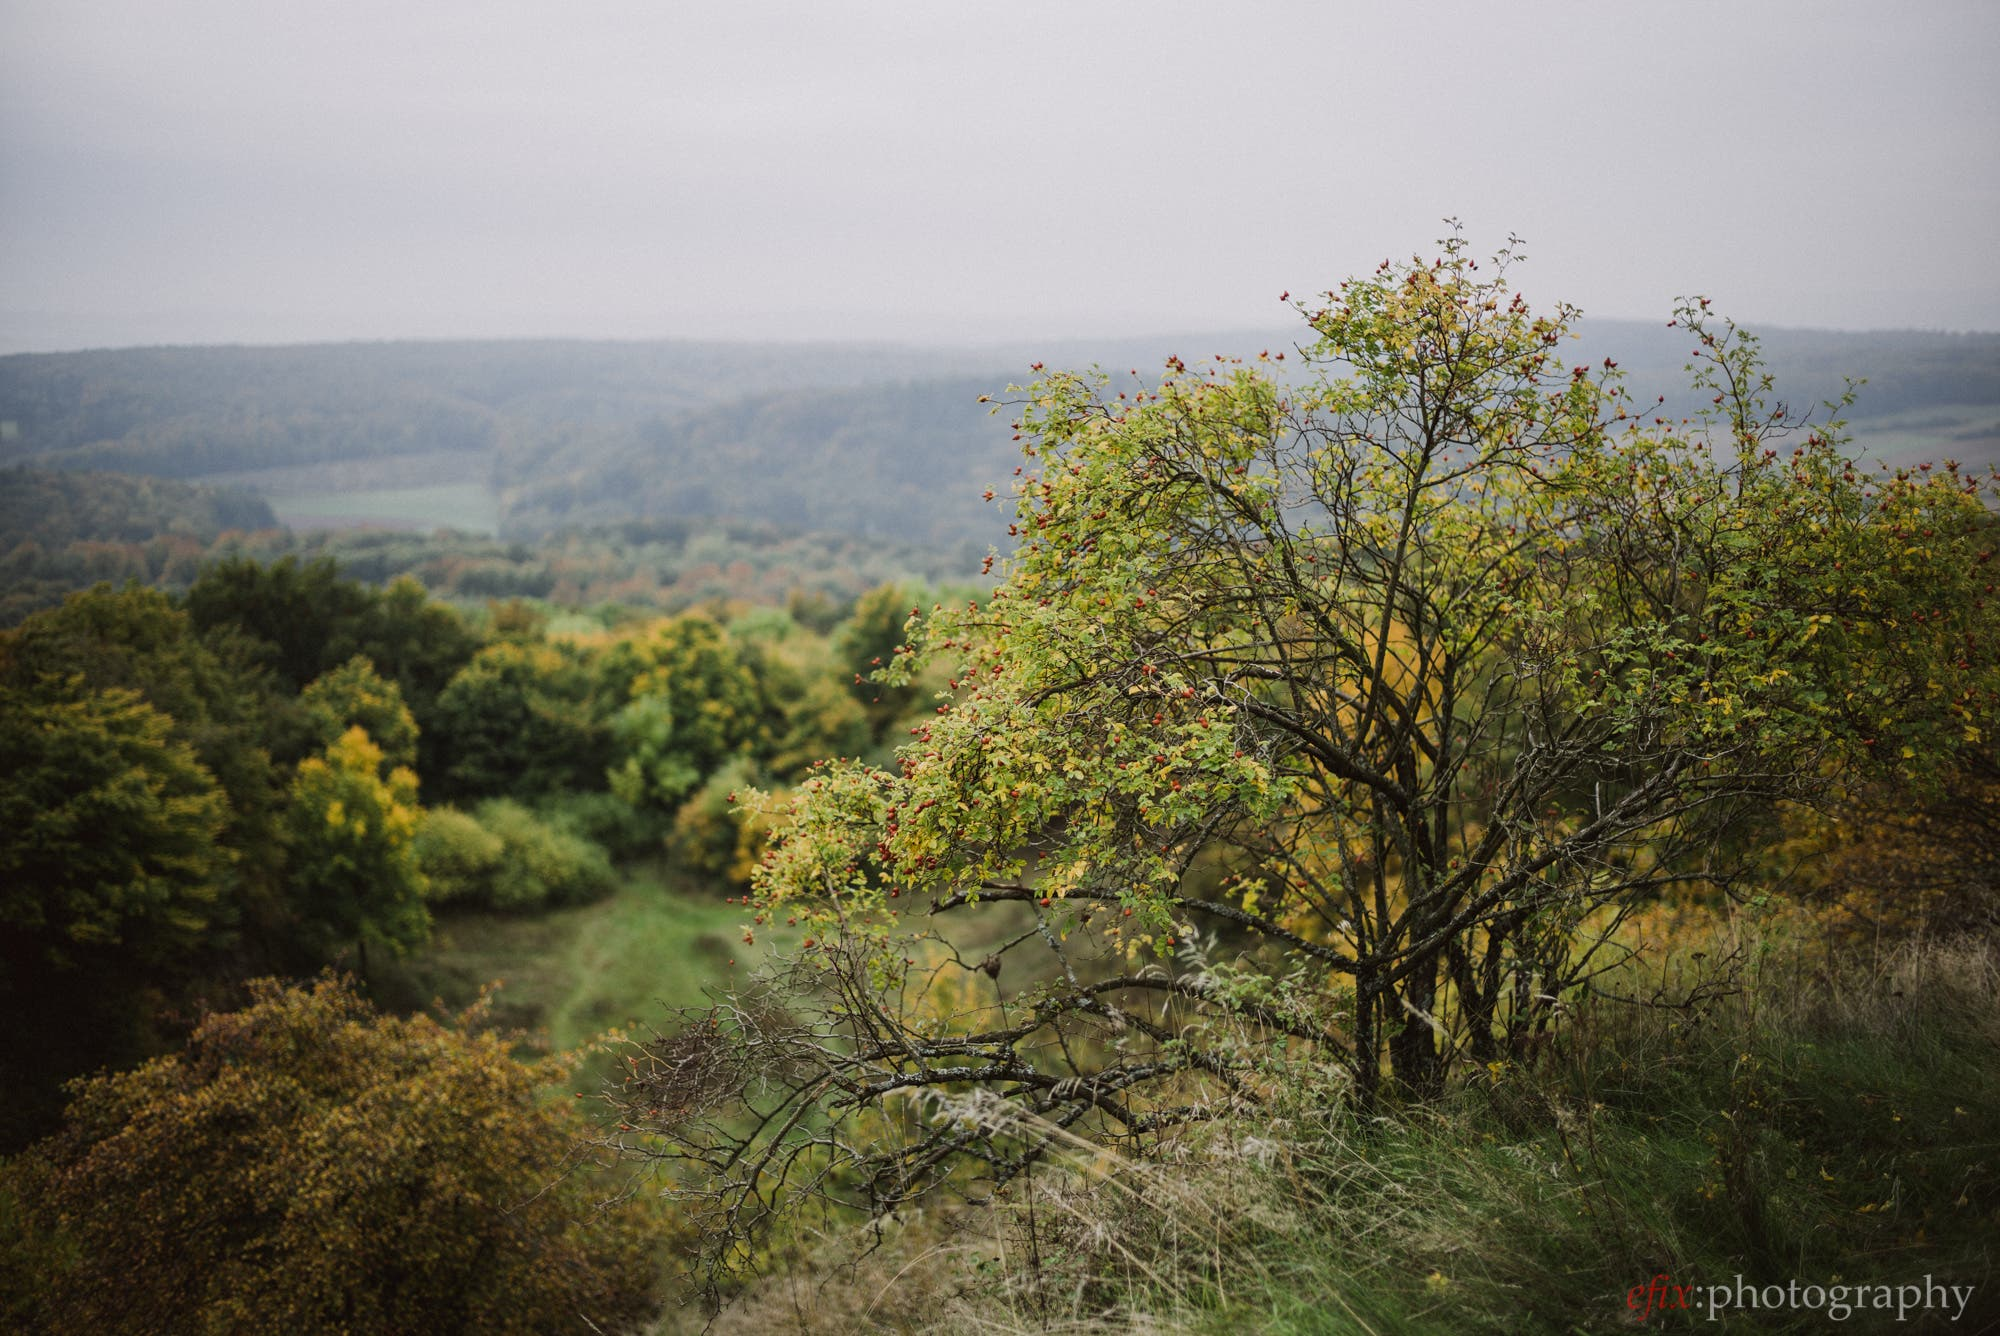 Review: Really Nice Images Film Presets for Lightroom - The